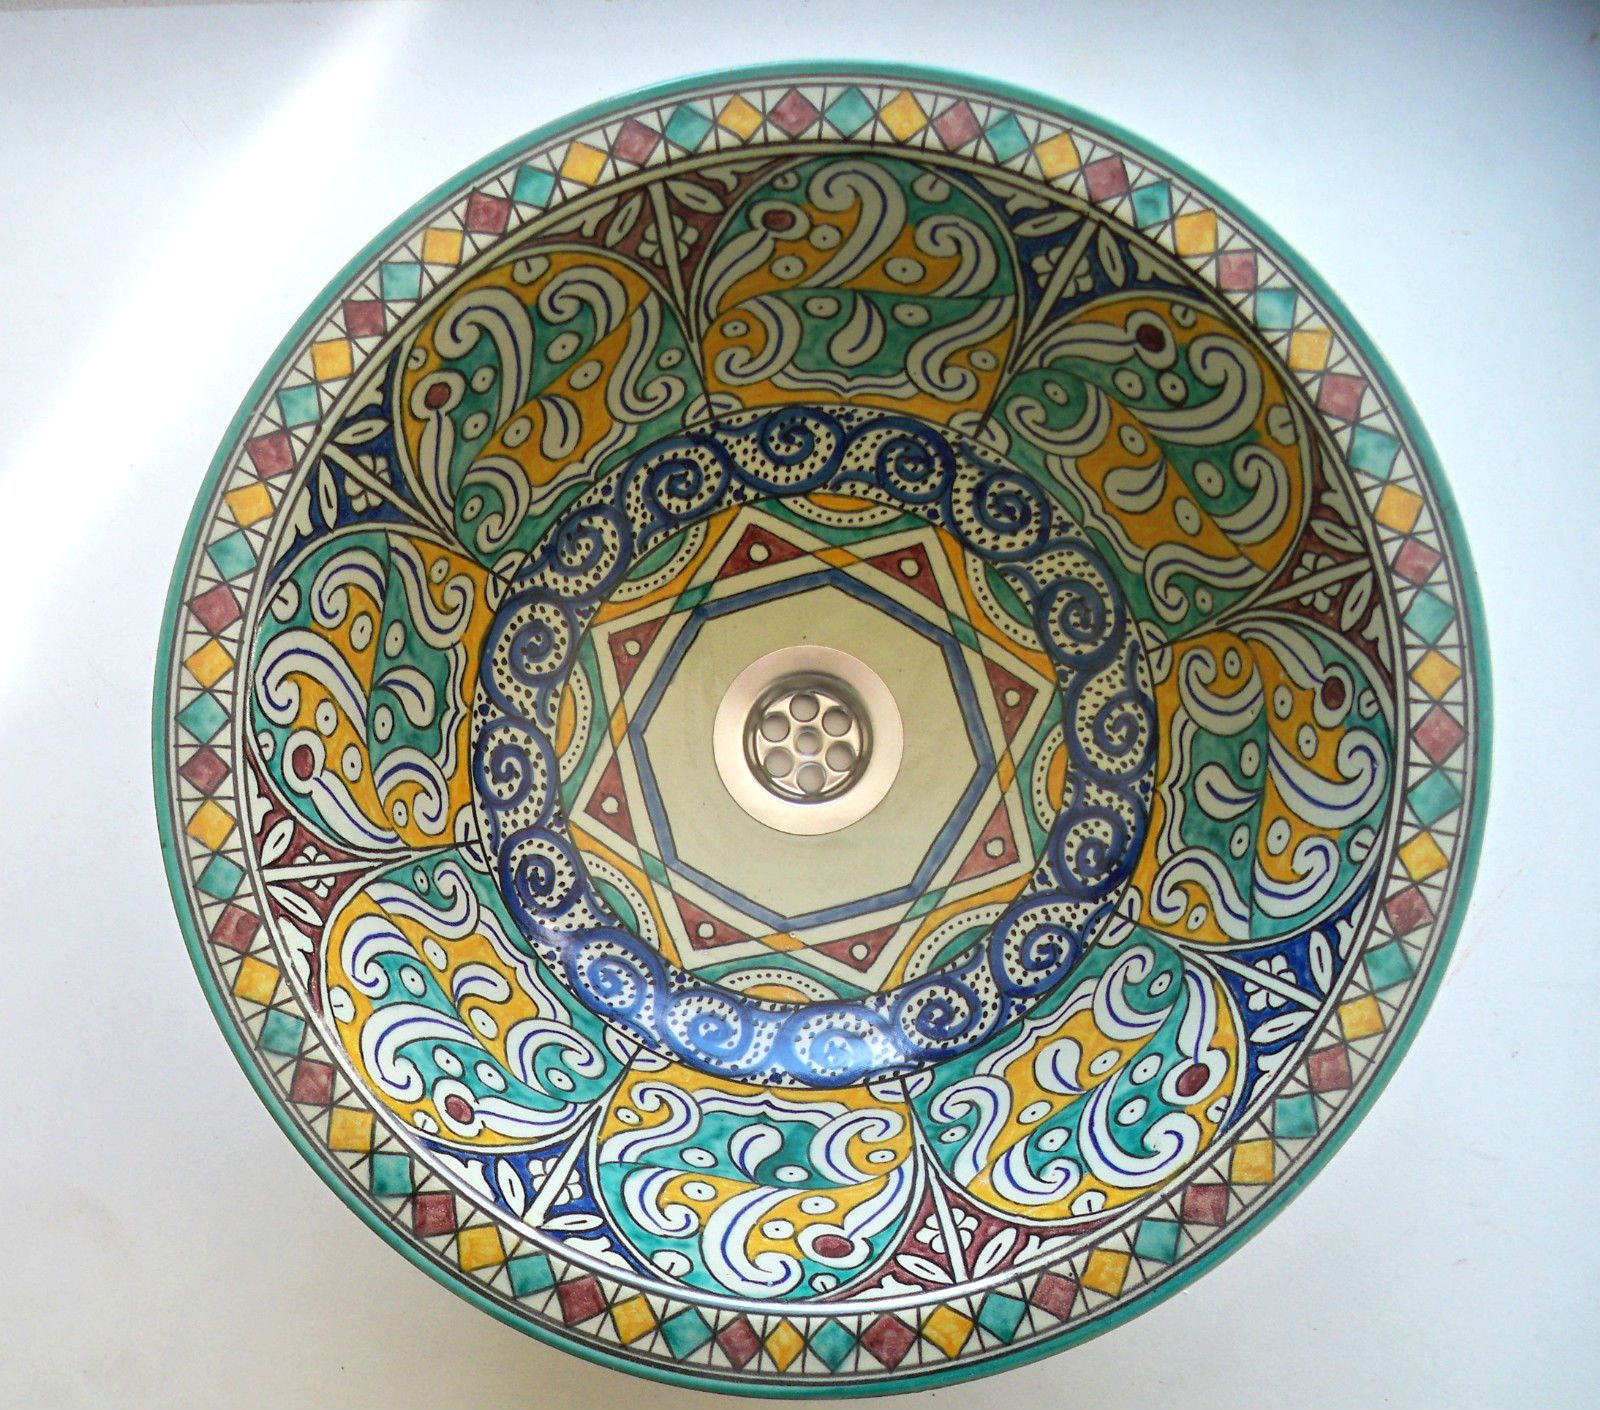 Vasque c ramique ronde marocaine vier lave main n25 for Lavabo porcelaine ou ceramique